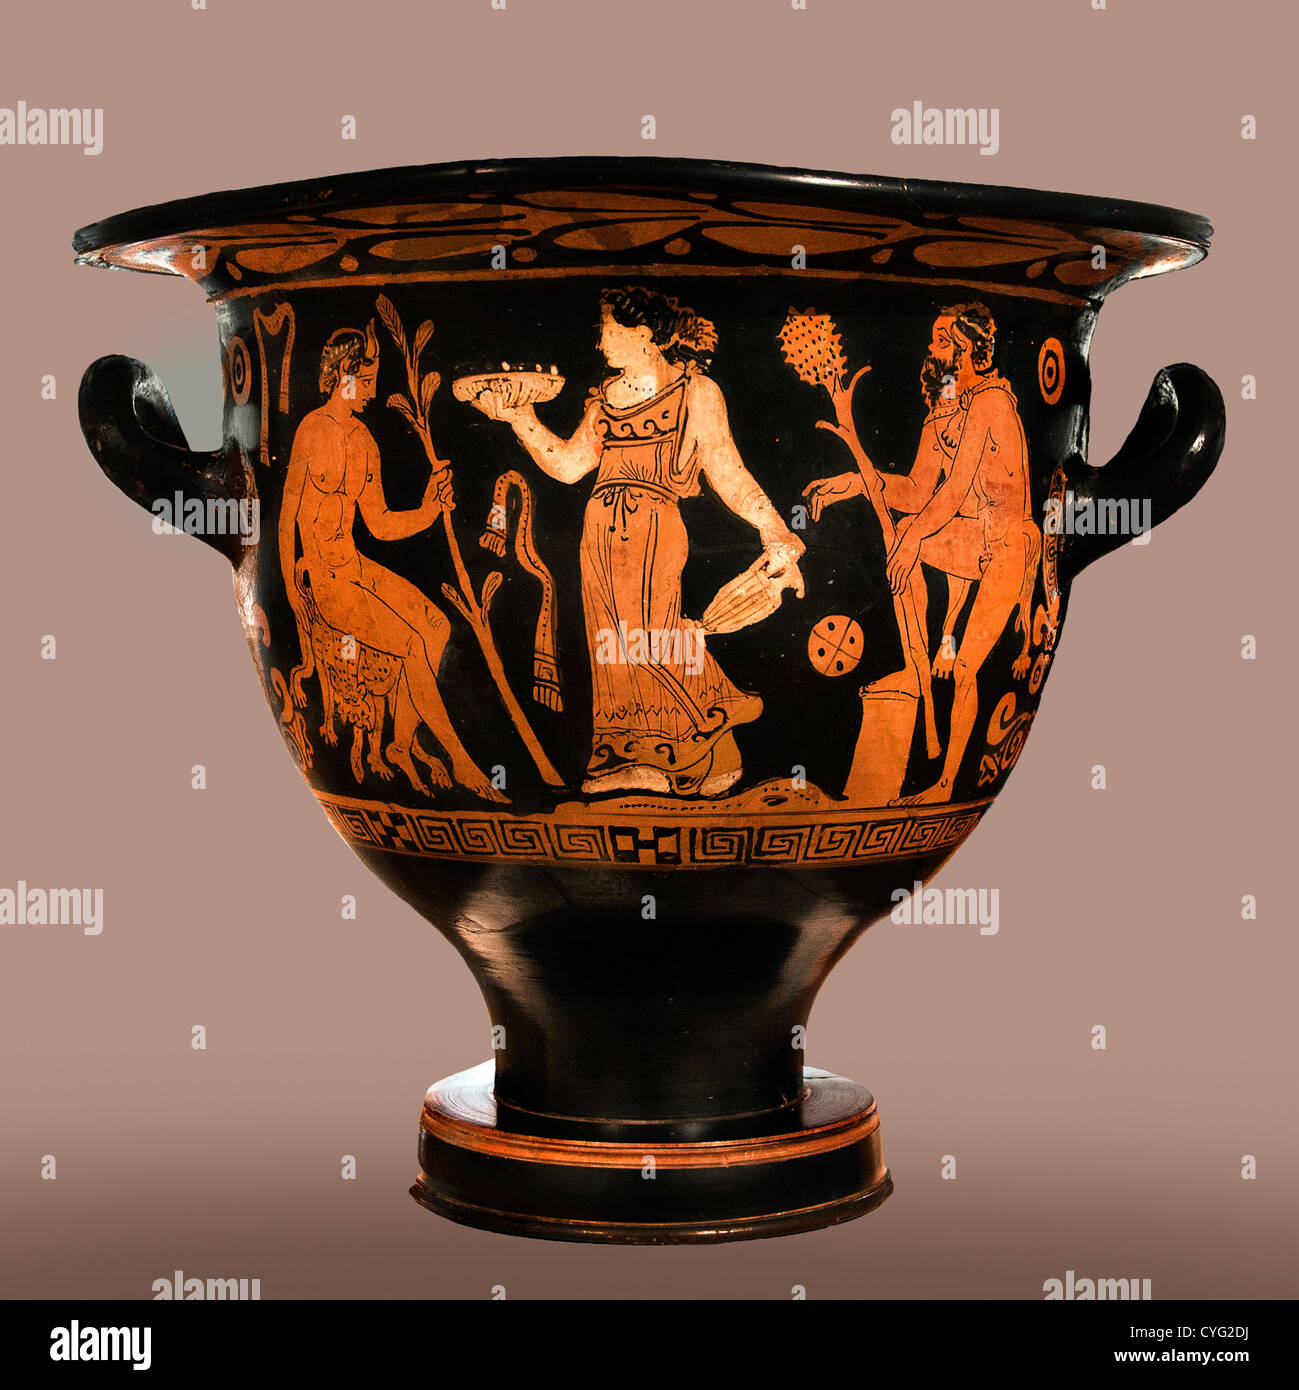 Terracotta bell krater vase for mixing wine and water Late Classical 390–380 B.C. Greek Attic Greece - Stock Image